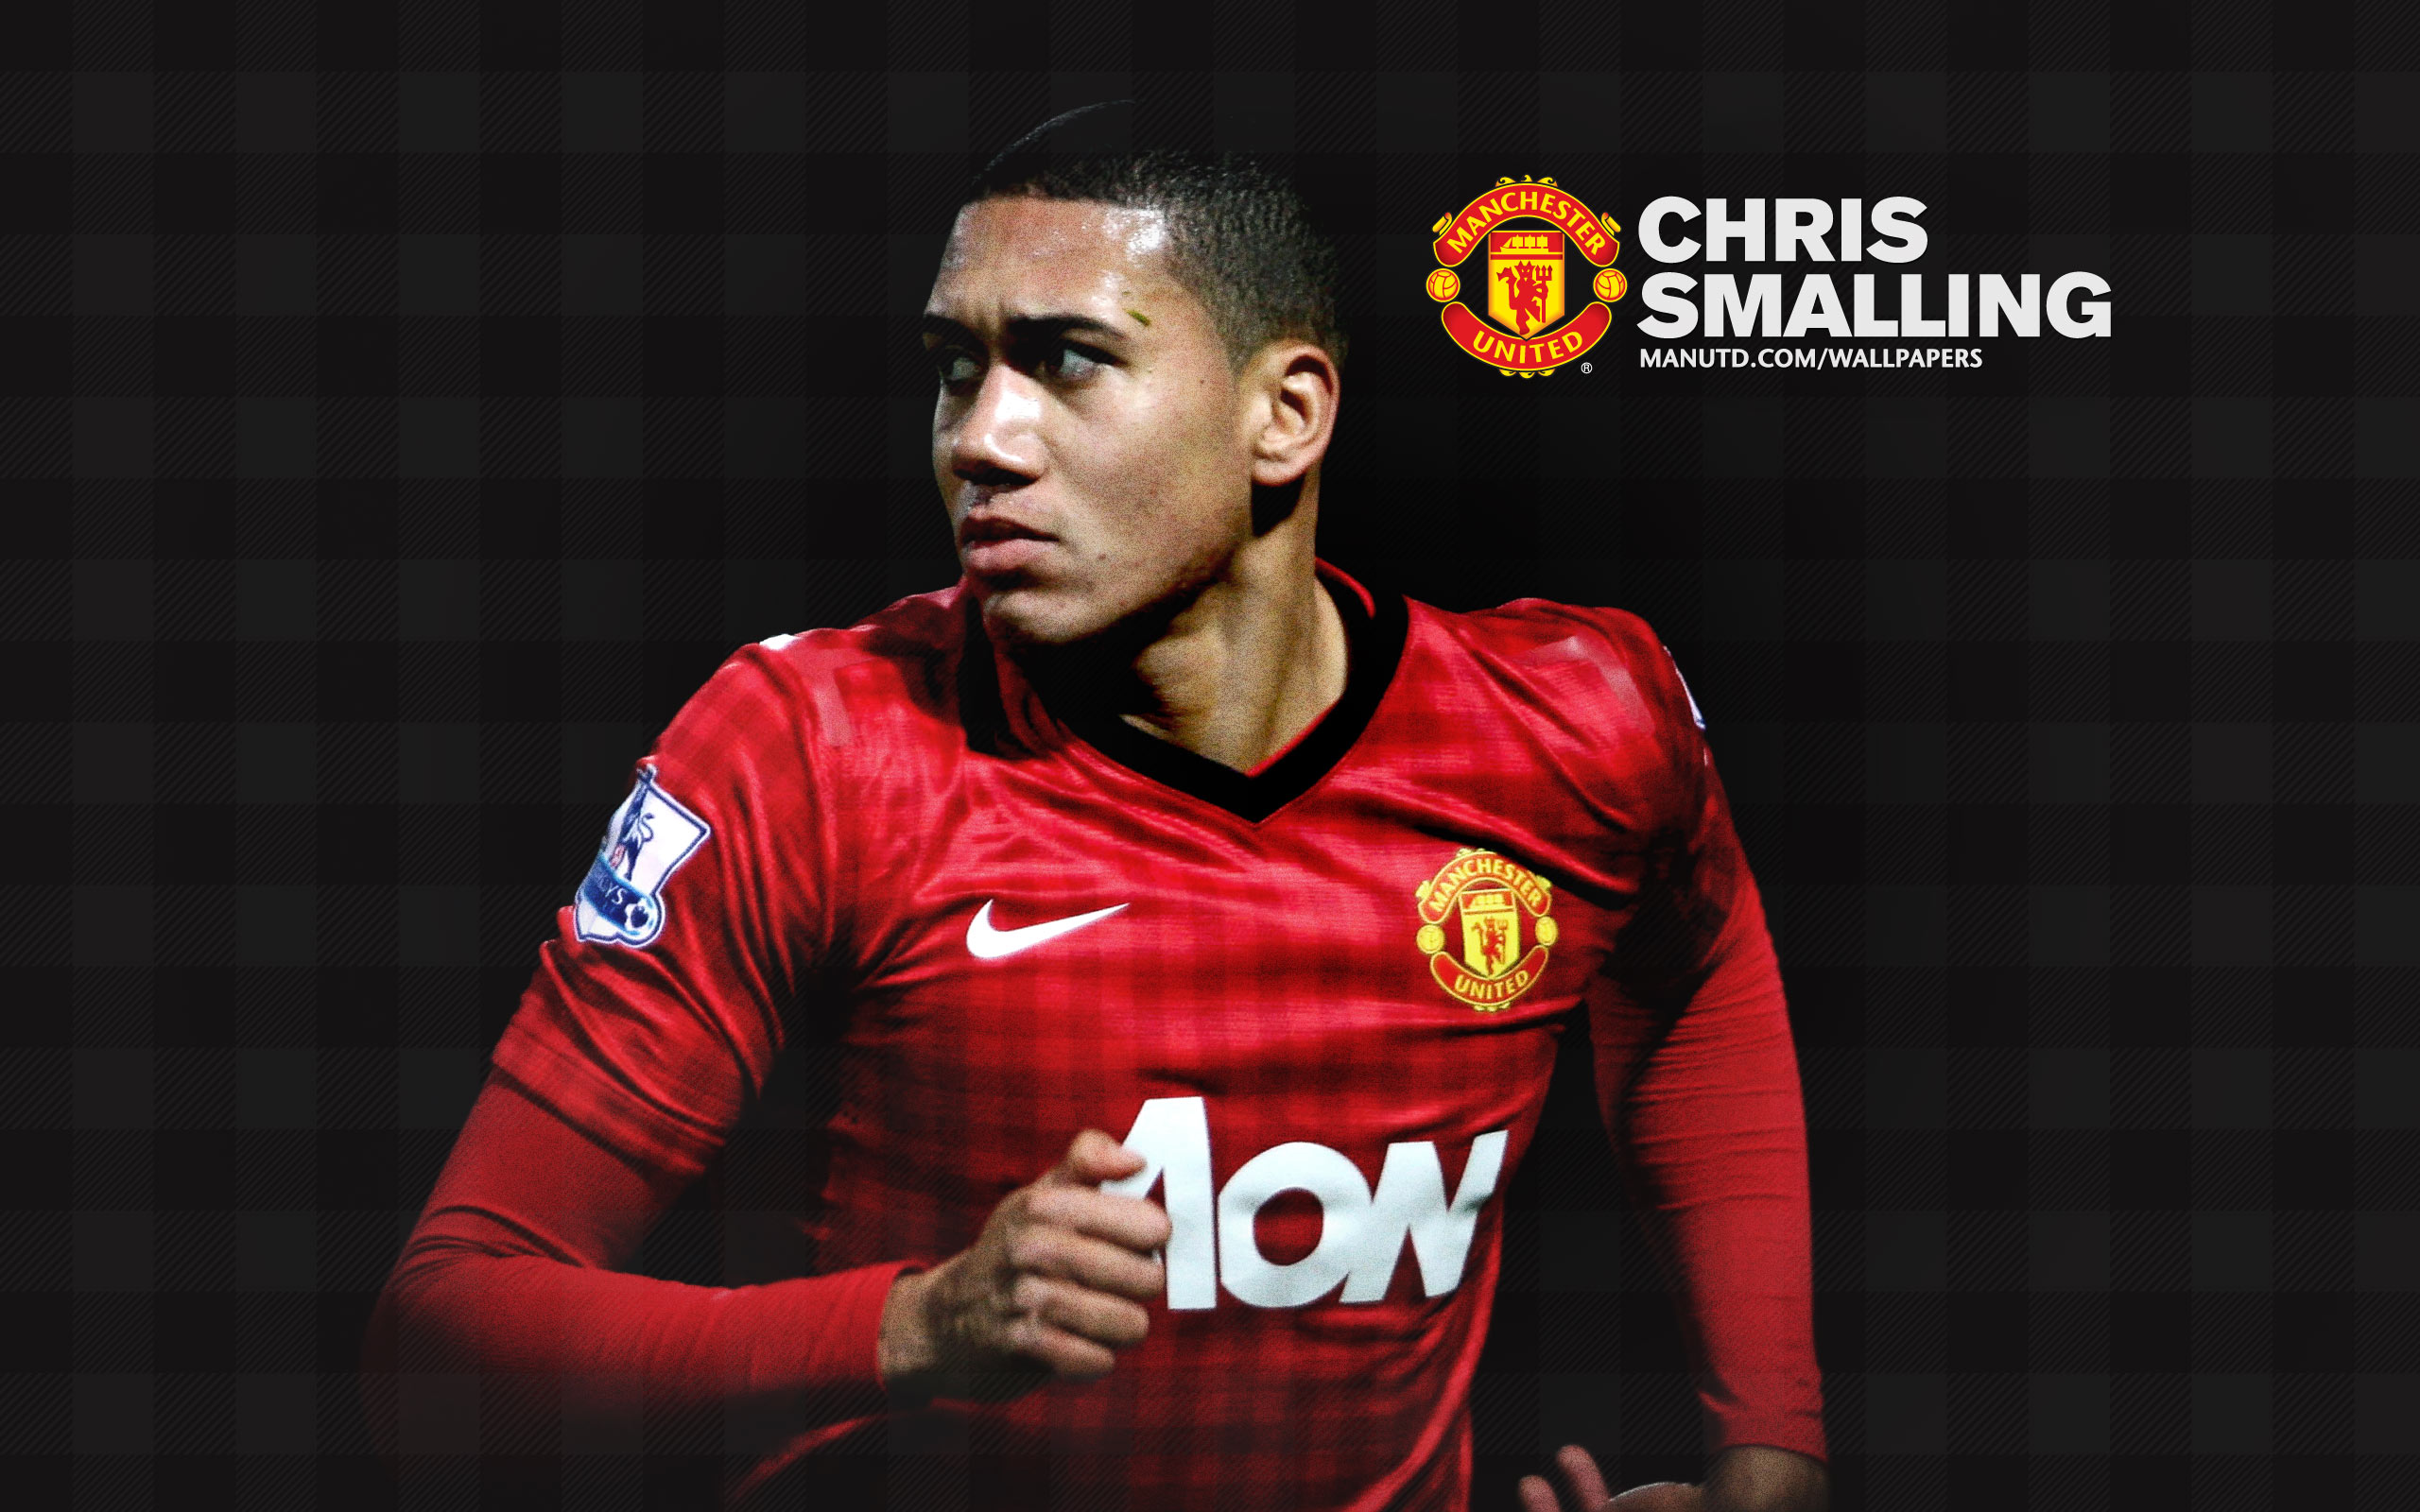 manchester united players wallpaper 2012 2013 player manchester united 2560x1600 download hd wallpaper wallpapertip manchester united players wallpaper